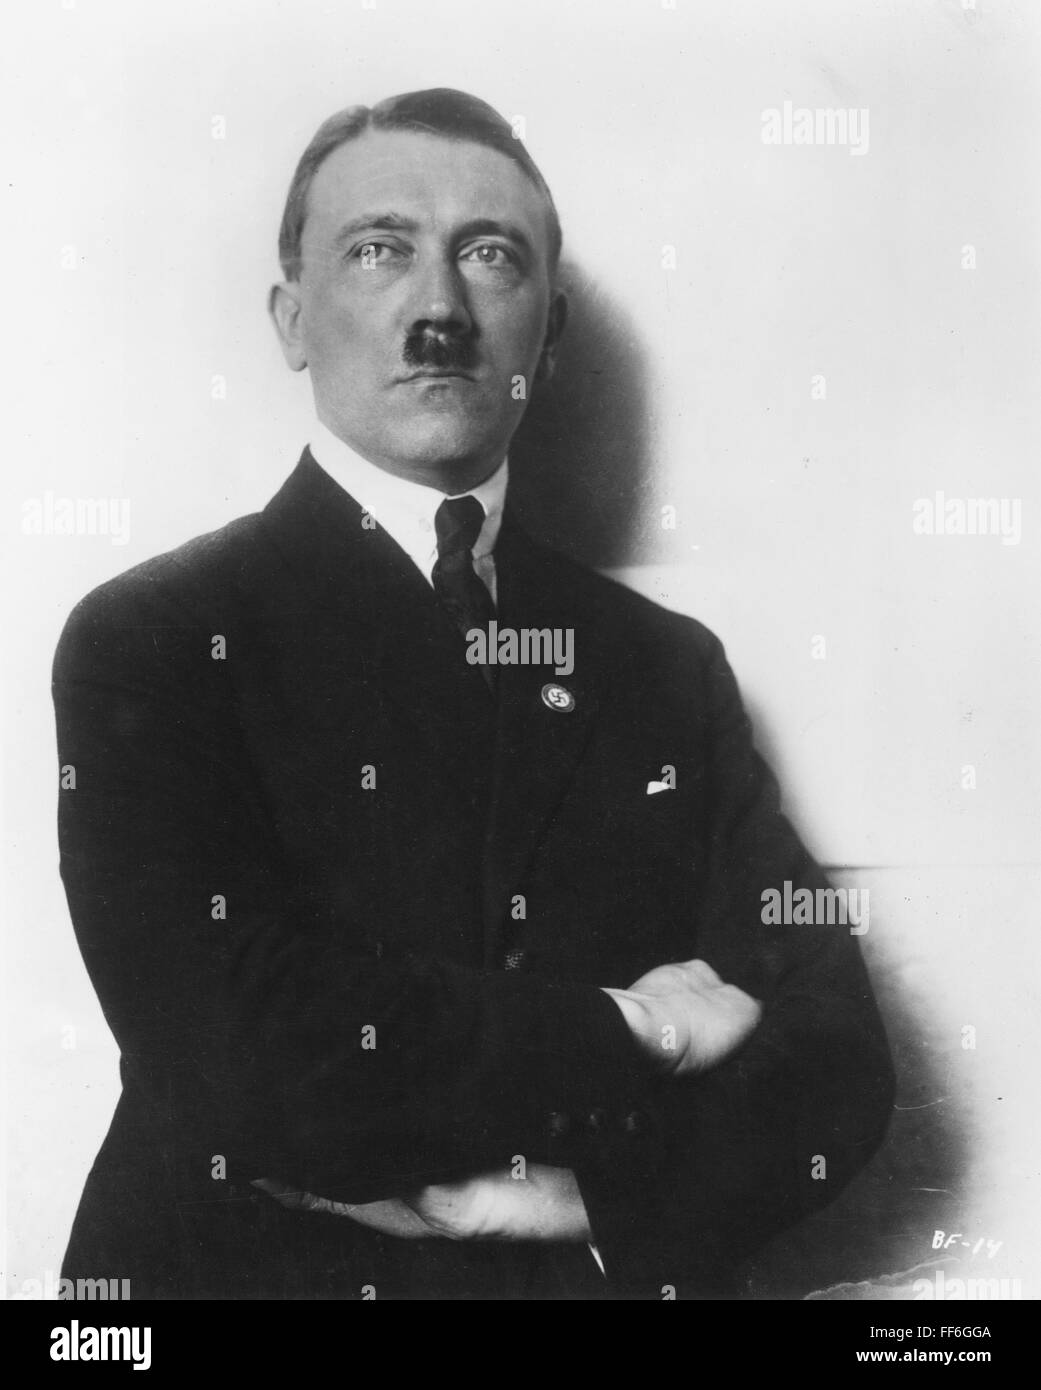 adolf hitler 1889 1945 essay Hitler, adolf, 1889-1945 known as der führer (the leader) 1889-1945 german dictator hitler was born in braunau in upper austria, the son of a minor customs official he was educated at the secondary schools of linz and steyr, and destined by his father for the civil service.